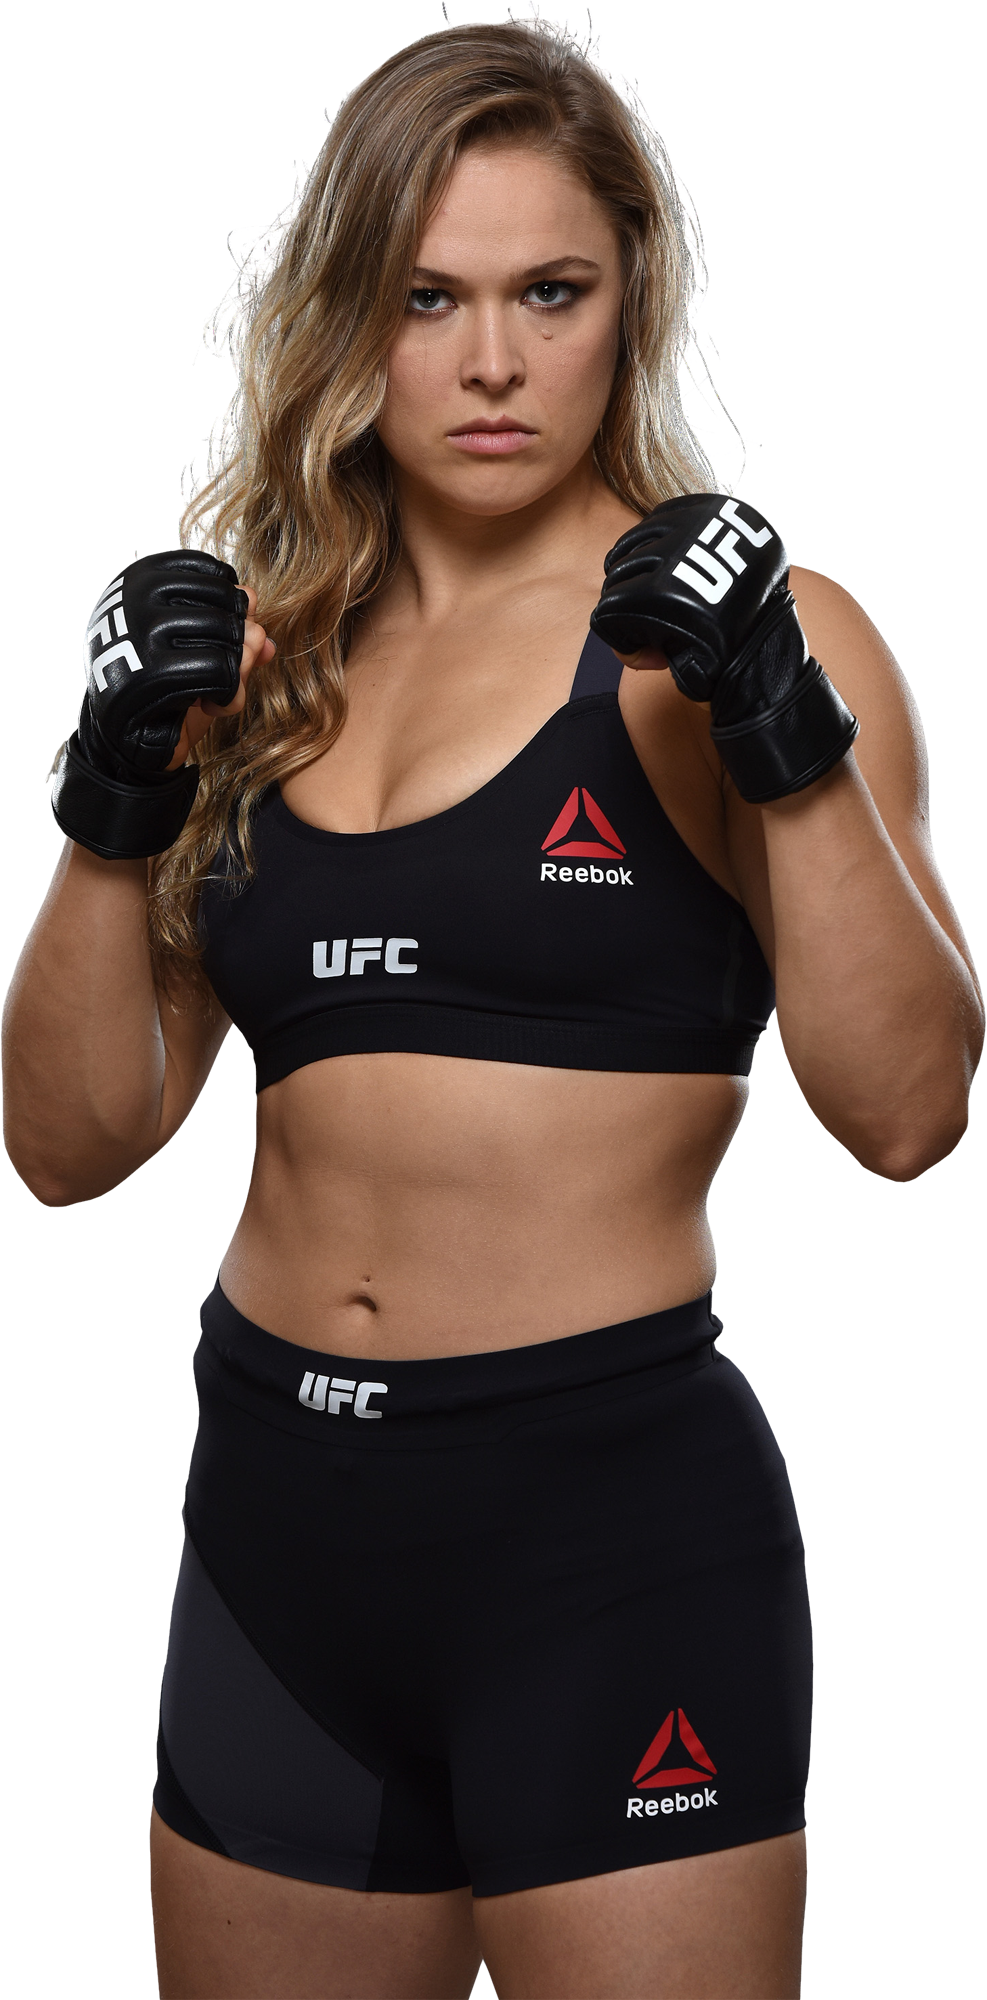 Ronda Rousey PNG Transparent Image